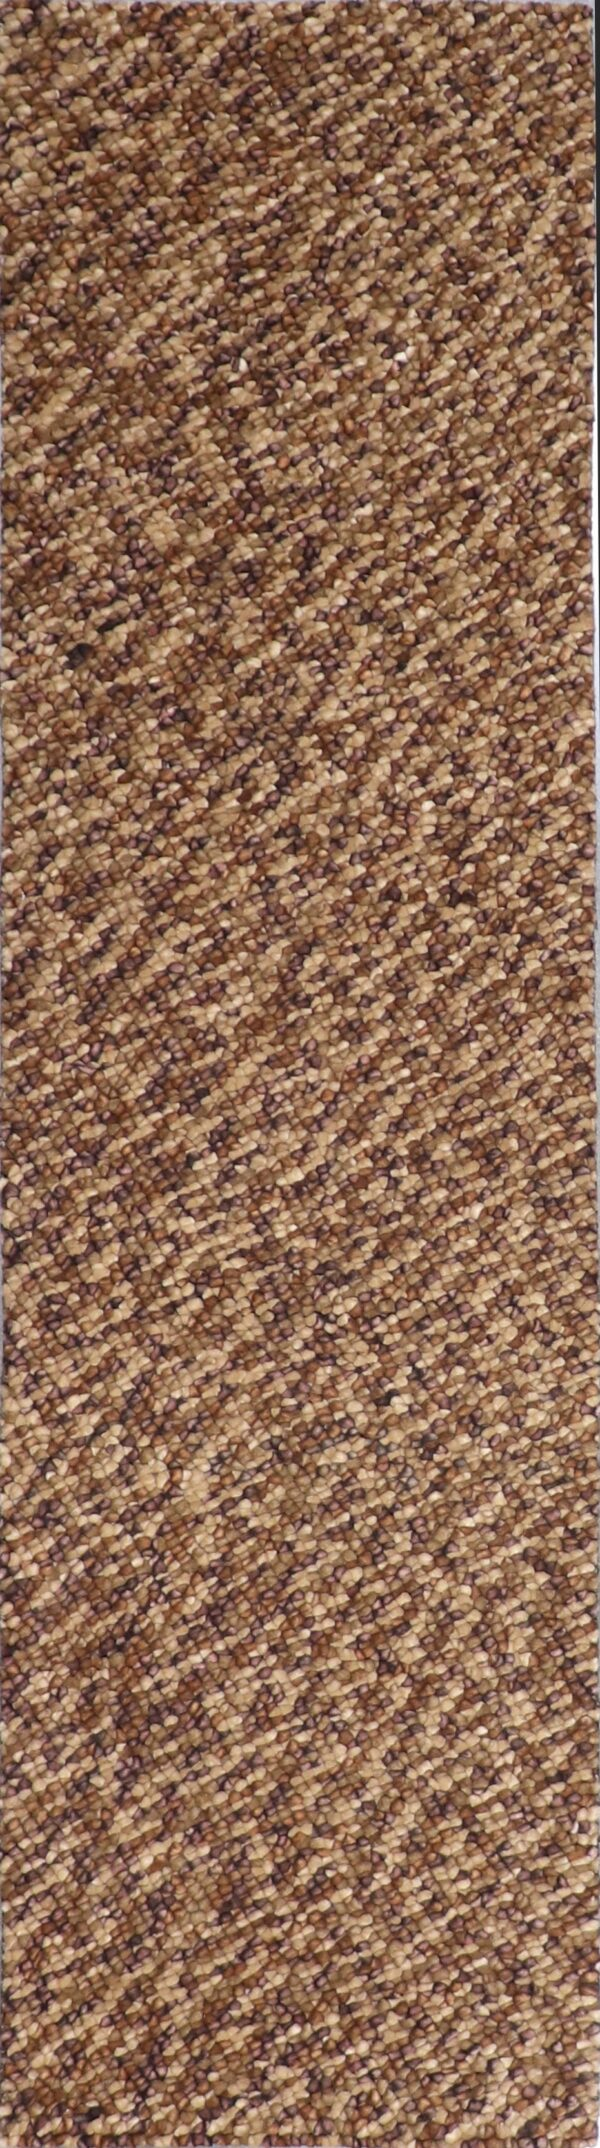 """2'5""""x9'4"""" Contemporary Wool Hand-Tufted Rug - Direct Rug Import 